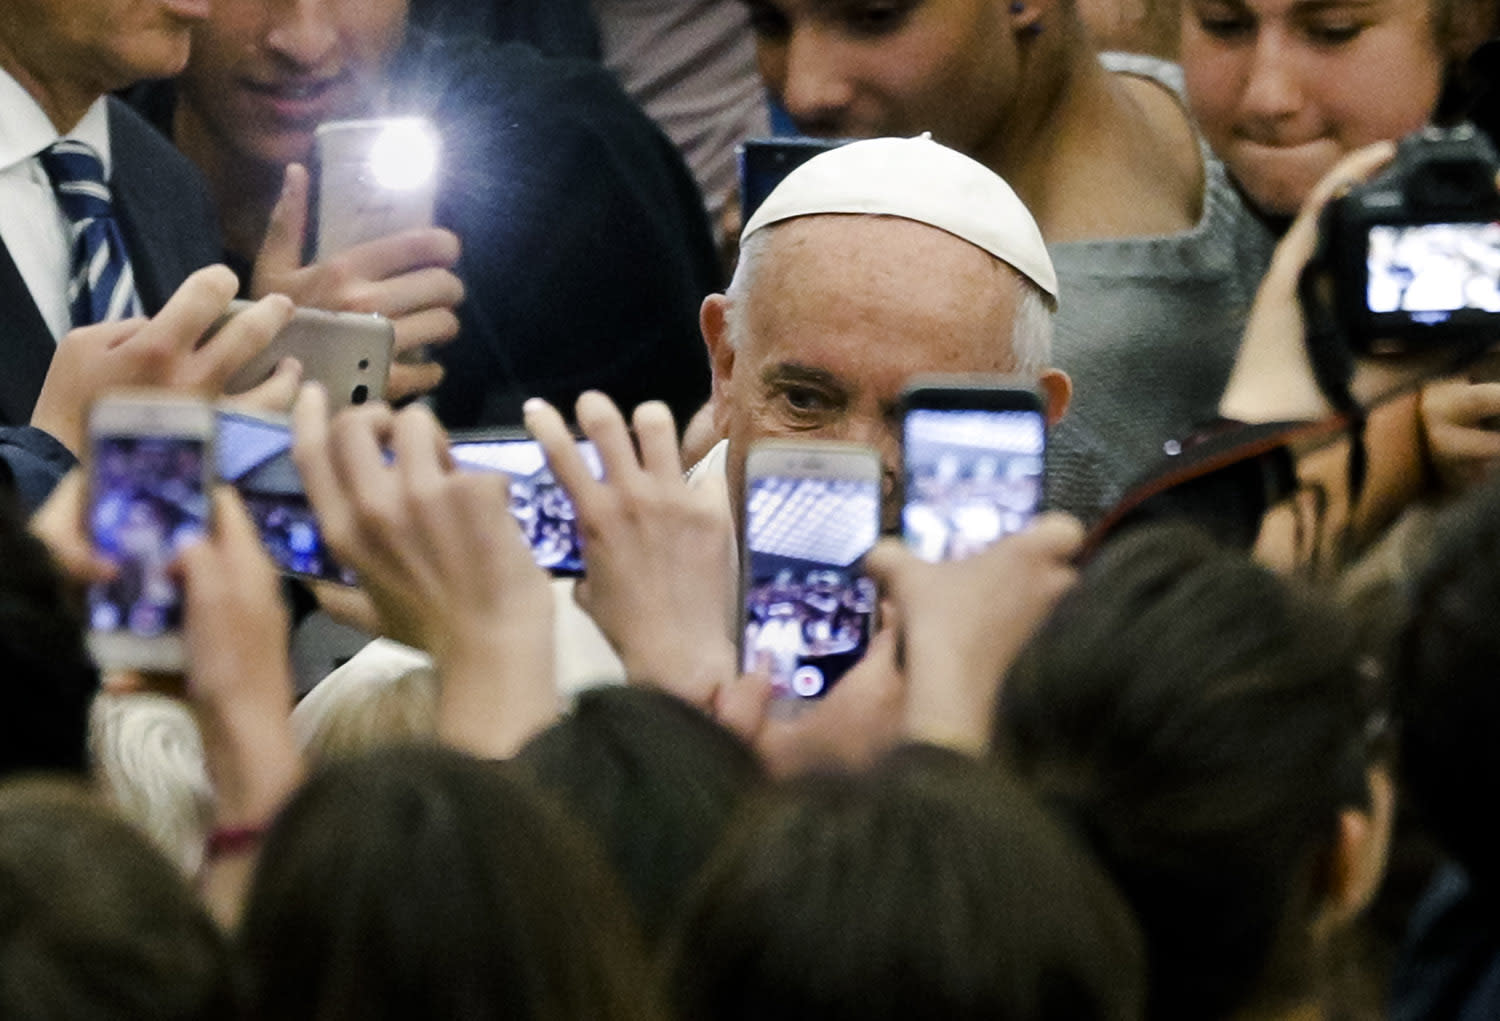 <p>Pope Francis is cheered by students' groups advocating for peace as he arrives for an audience with them at the Paul VI Hall at the Vatican, May 6, 2017. (Photo: Andrew Medichini/AP) </p>